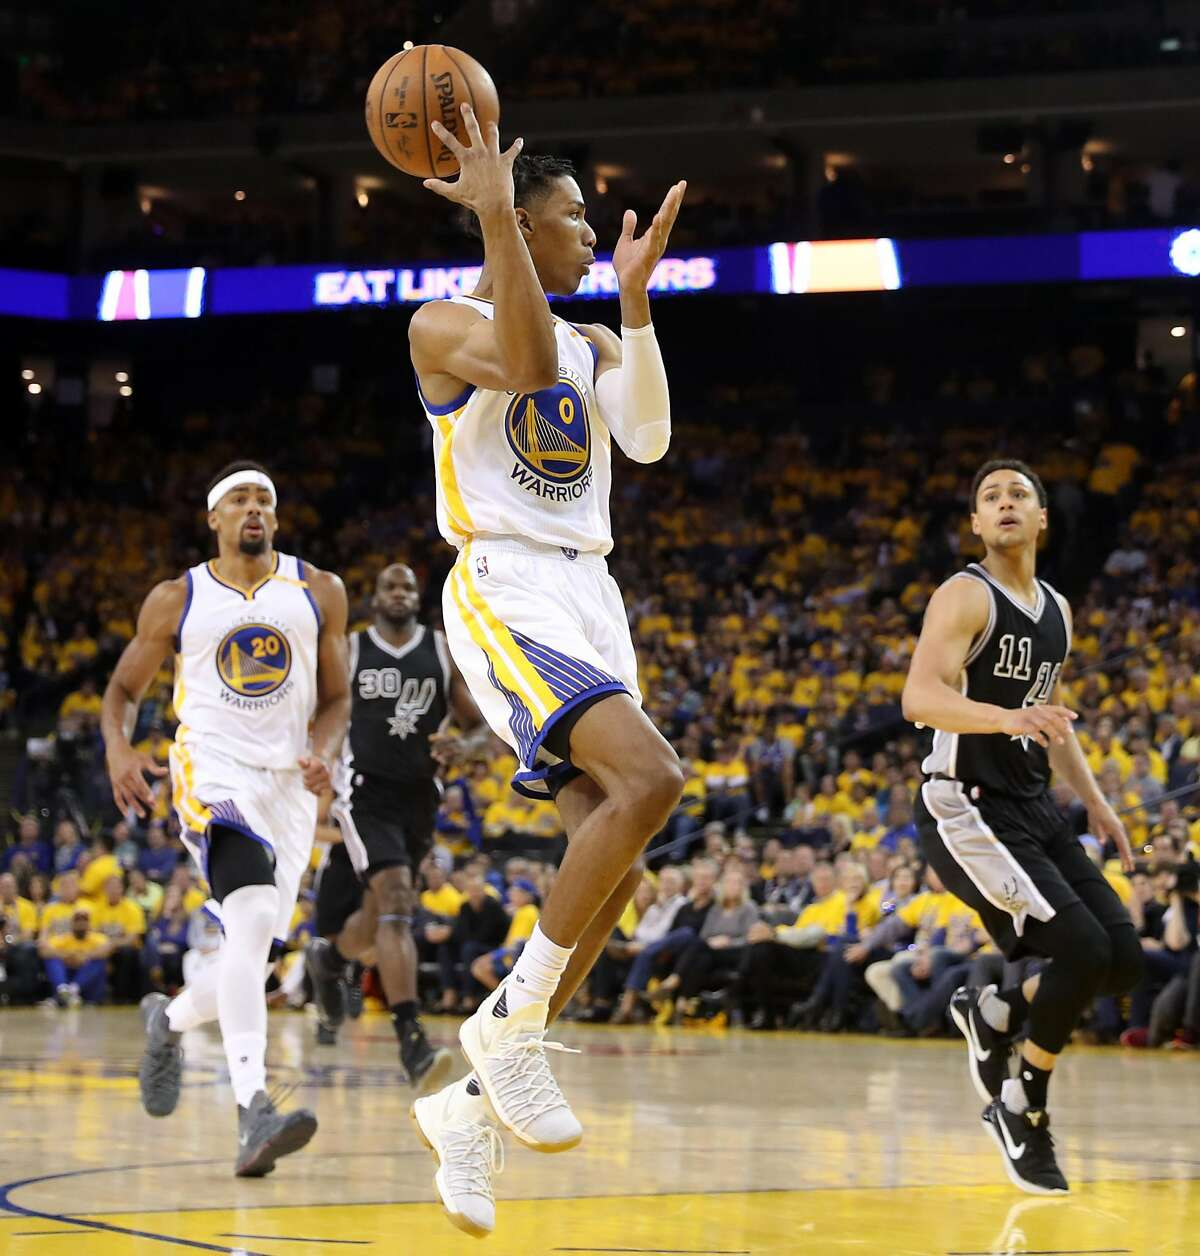 Golden State Warriors' Patrick McCaw makes a pass to James Michael McAdoo during Warriors' 136-100 win over San Antonio Spurs in Game 2 of NBA Western Conference Finals in Oakland, Calif., on Tuesday, May 16, 2017.